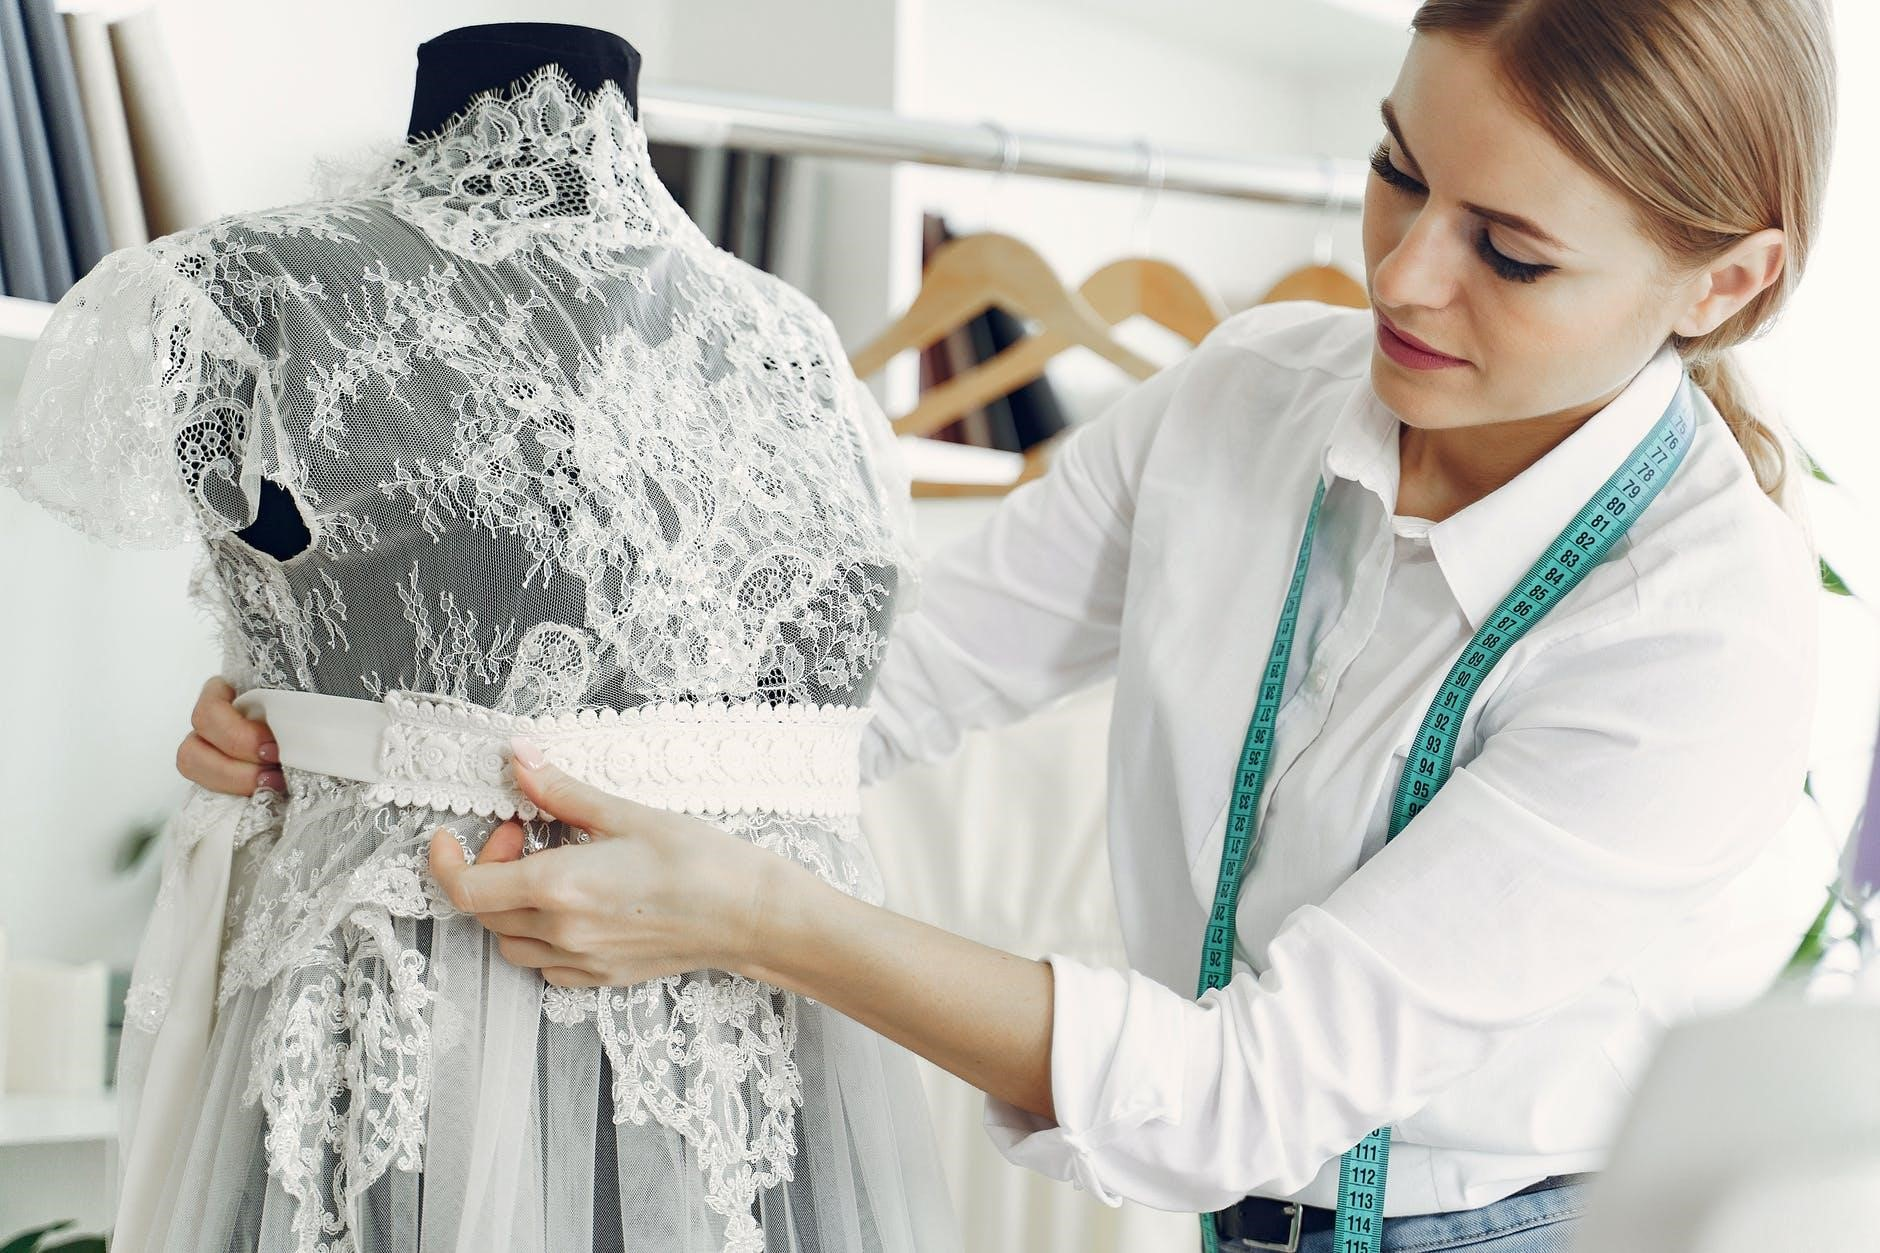 How to Practice Body Positivity When Wedding Dress Shopping